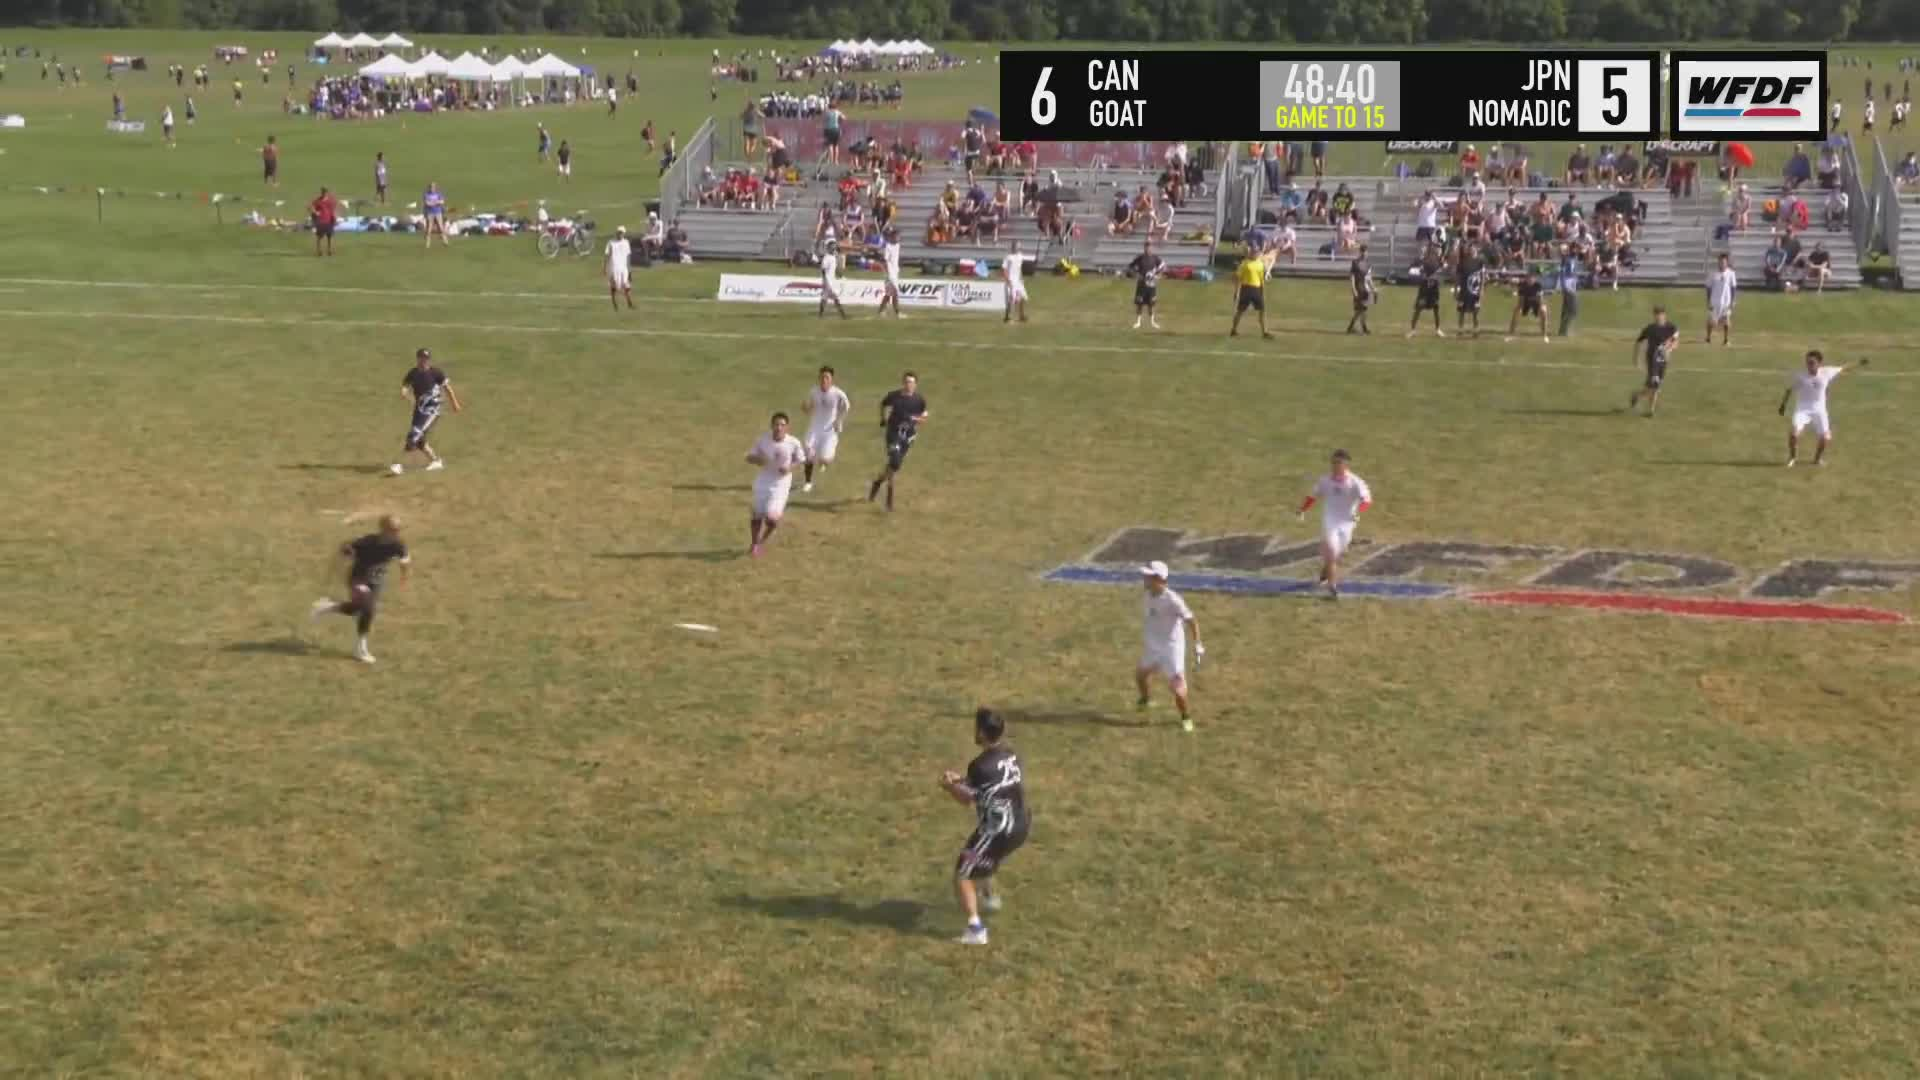 Sports, Ultimate Frisbee, World Flying Disc Federation, WUCC 2018 - GOAT (CAN) vs Nomadic Tribe (JPN) GIFs